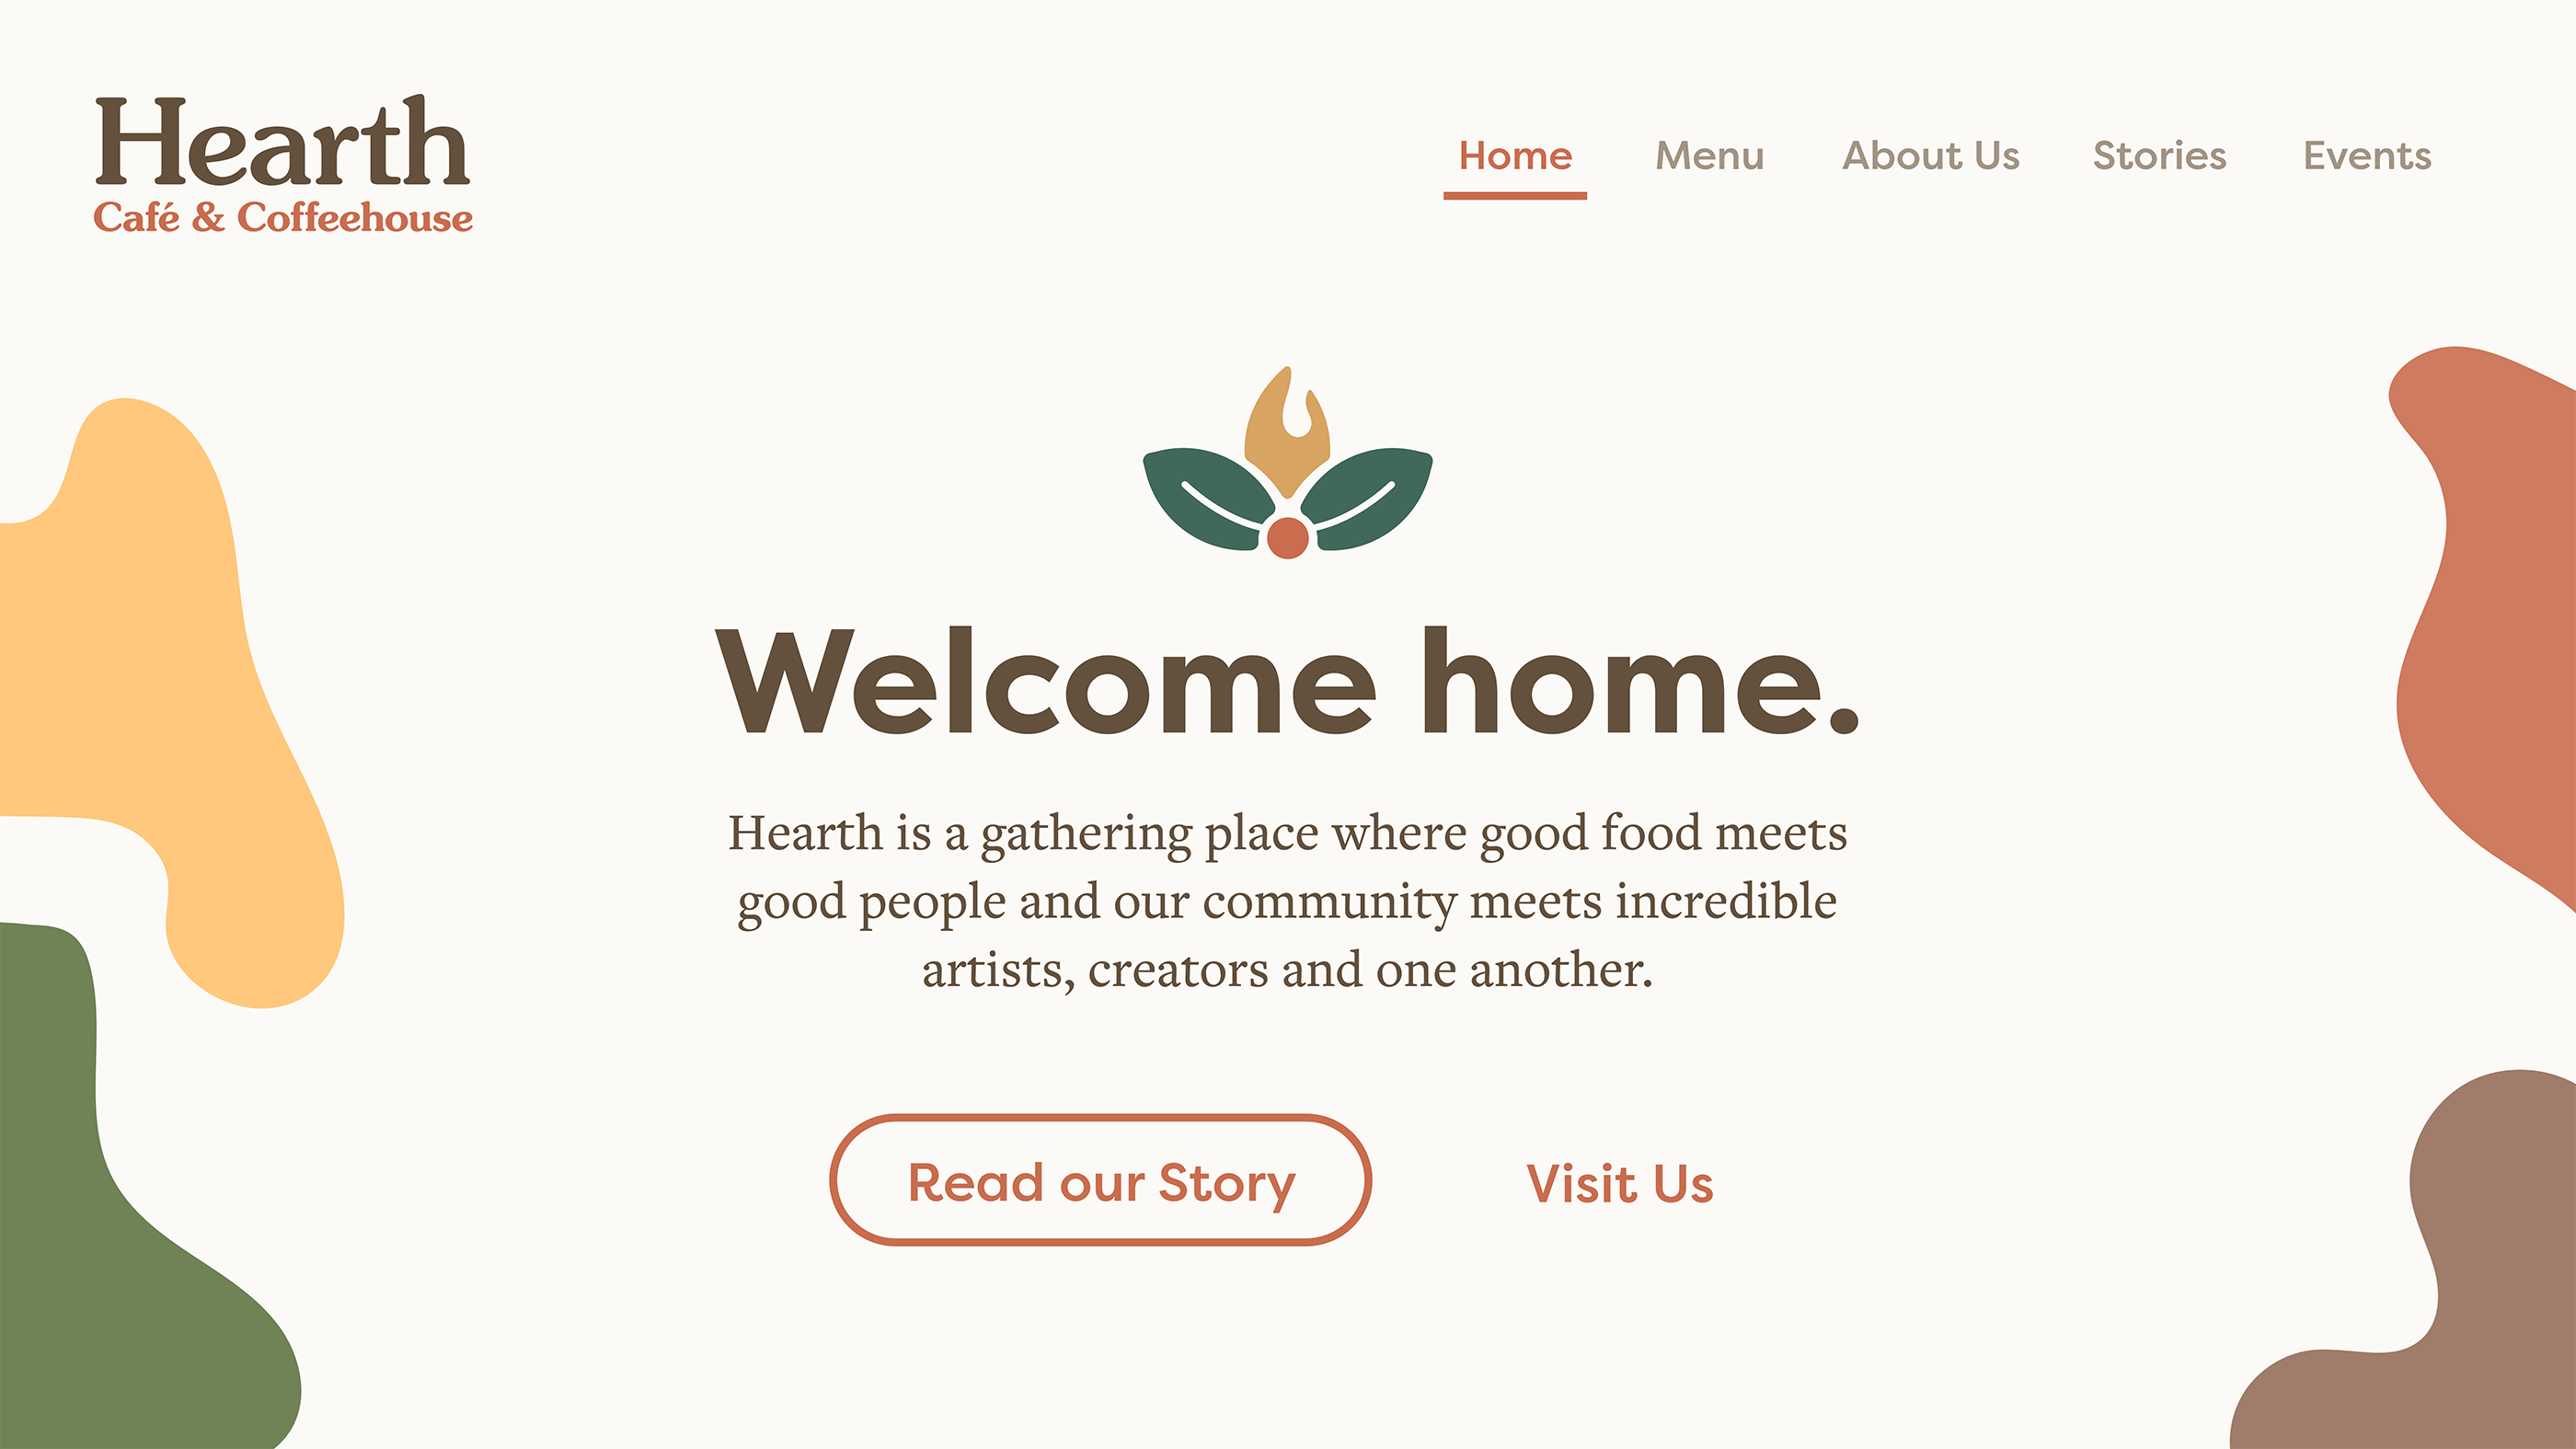 The homepage of the Hearth website